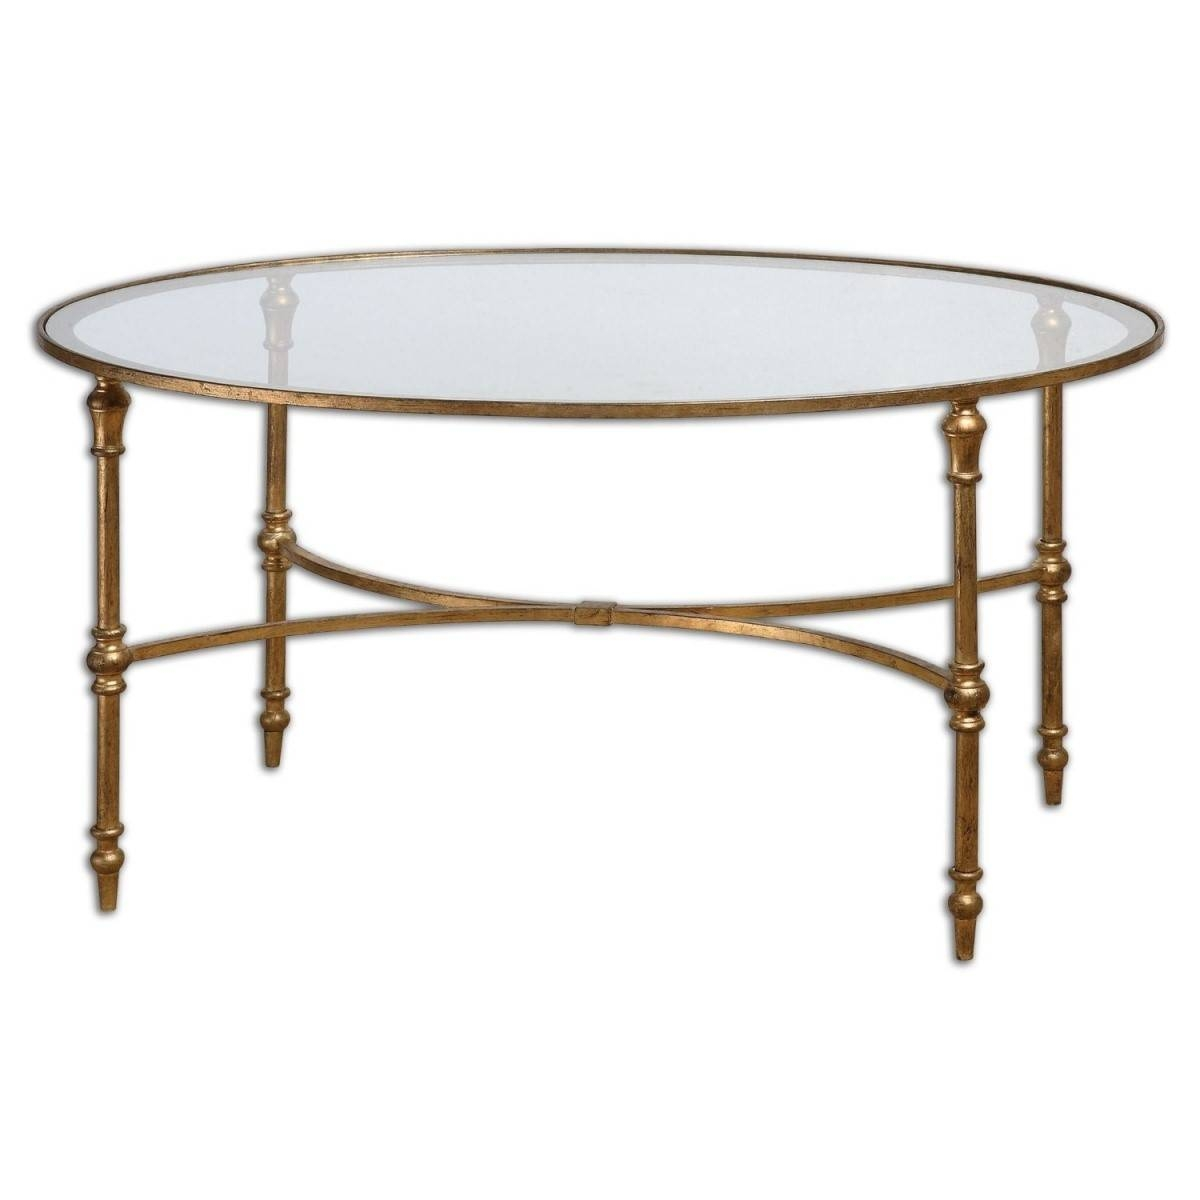 Furniture. Round Gold Coffee Table Ideas: Minimalist Modern Metal throughout Metal Coffee Tables With Glass Top (Image 14 of 31)